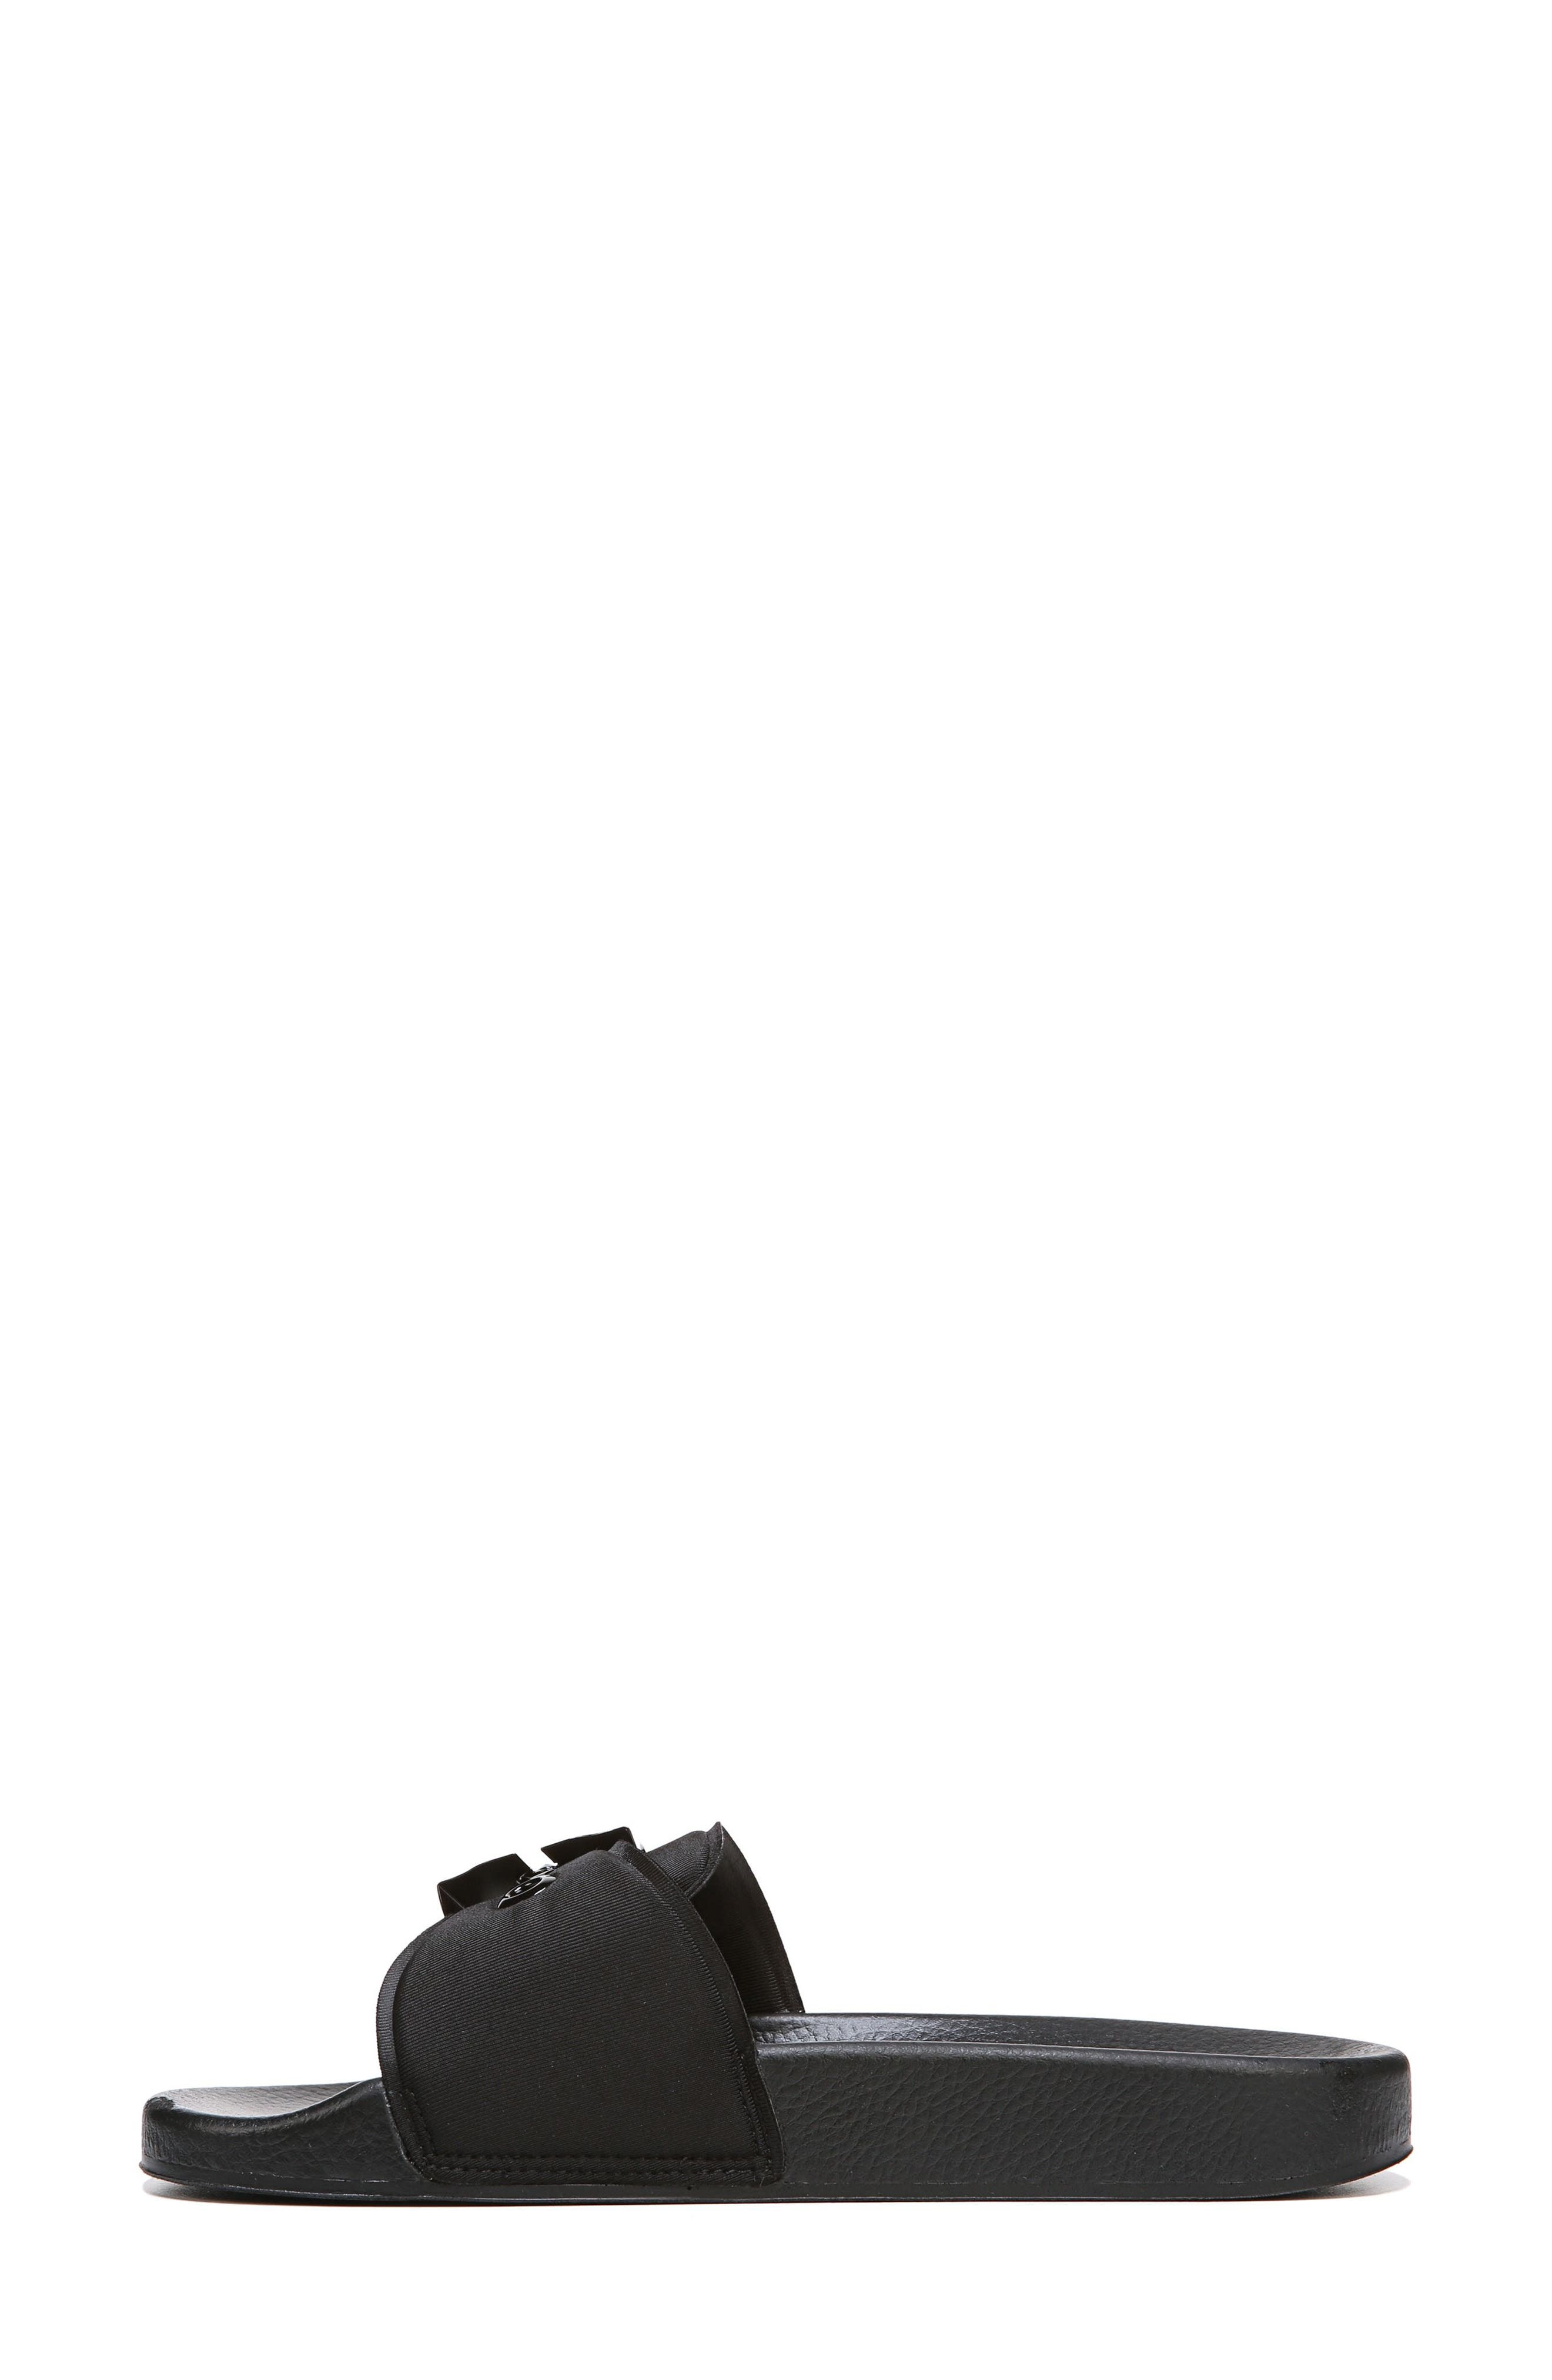 Original Pool Slide Sandal,                             Alternate thumbnail 3, color,                             BLACK